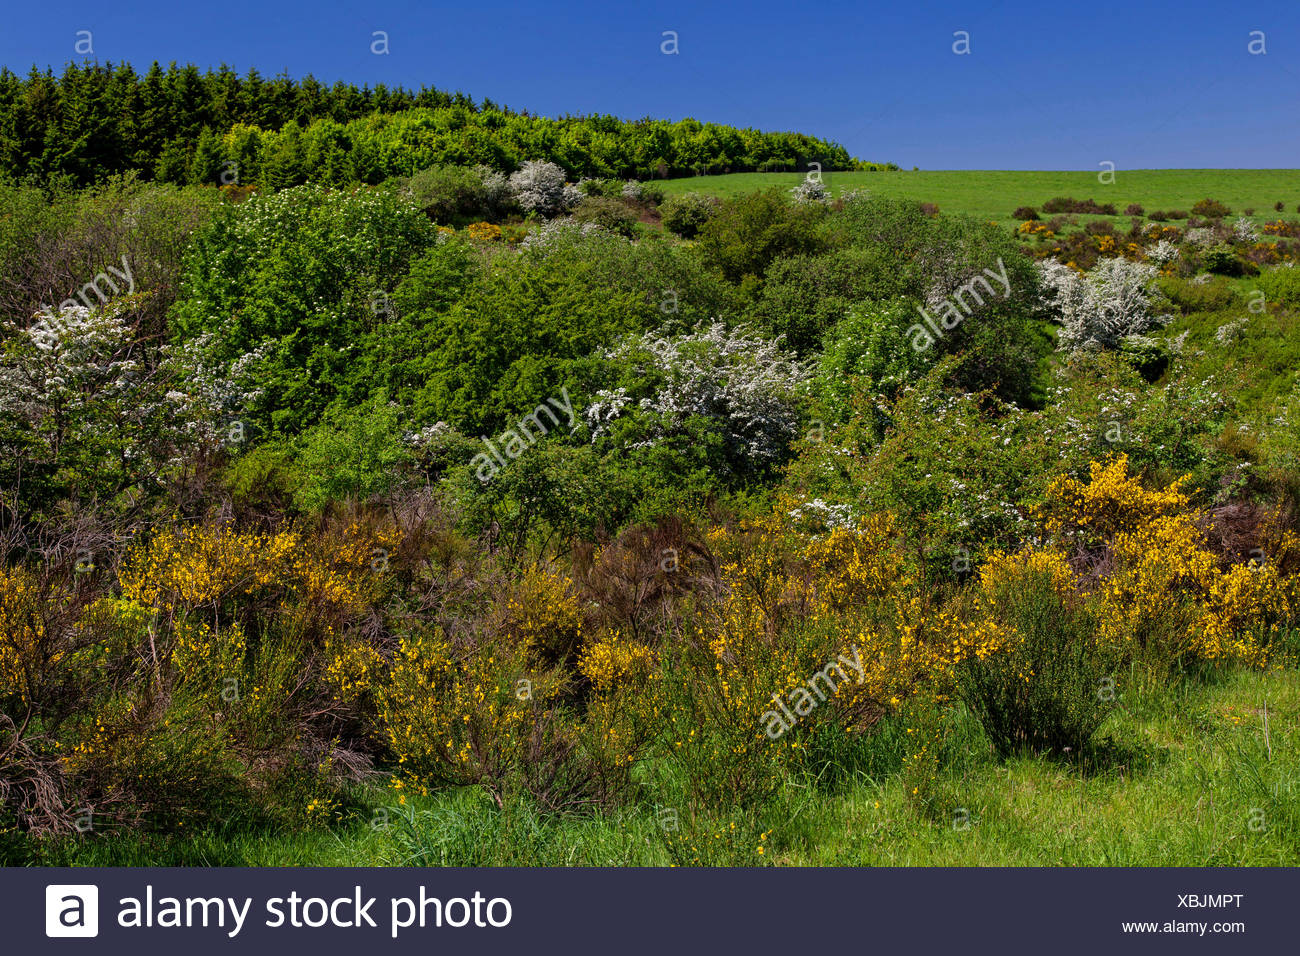 Scotch broom (Cytisus scoparius, Sarothamnus scoparius), blooming scotch brooms and blackthorns on Dreiborn Plateau, Germany, North Rhine-Westphalia, Eifel National Park - Stock Image